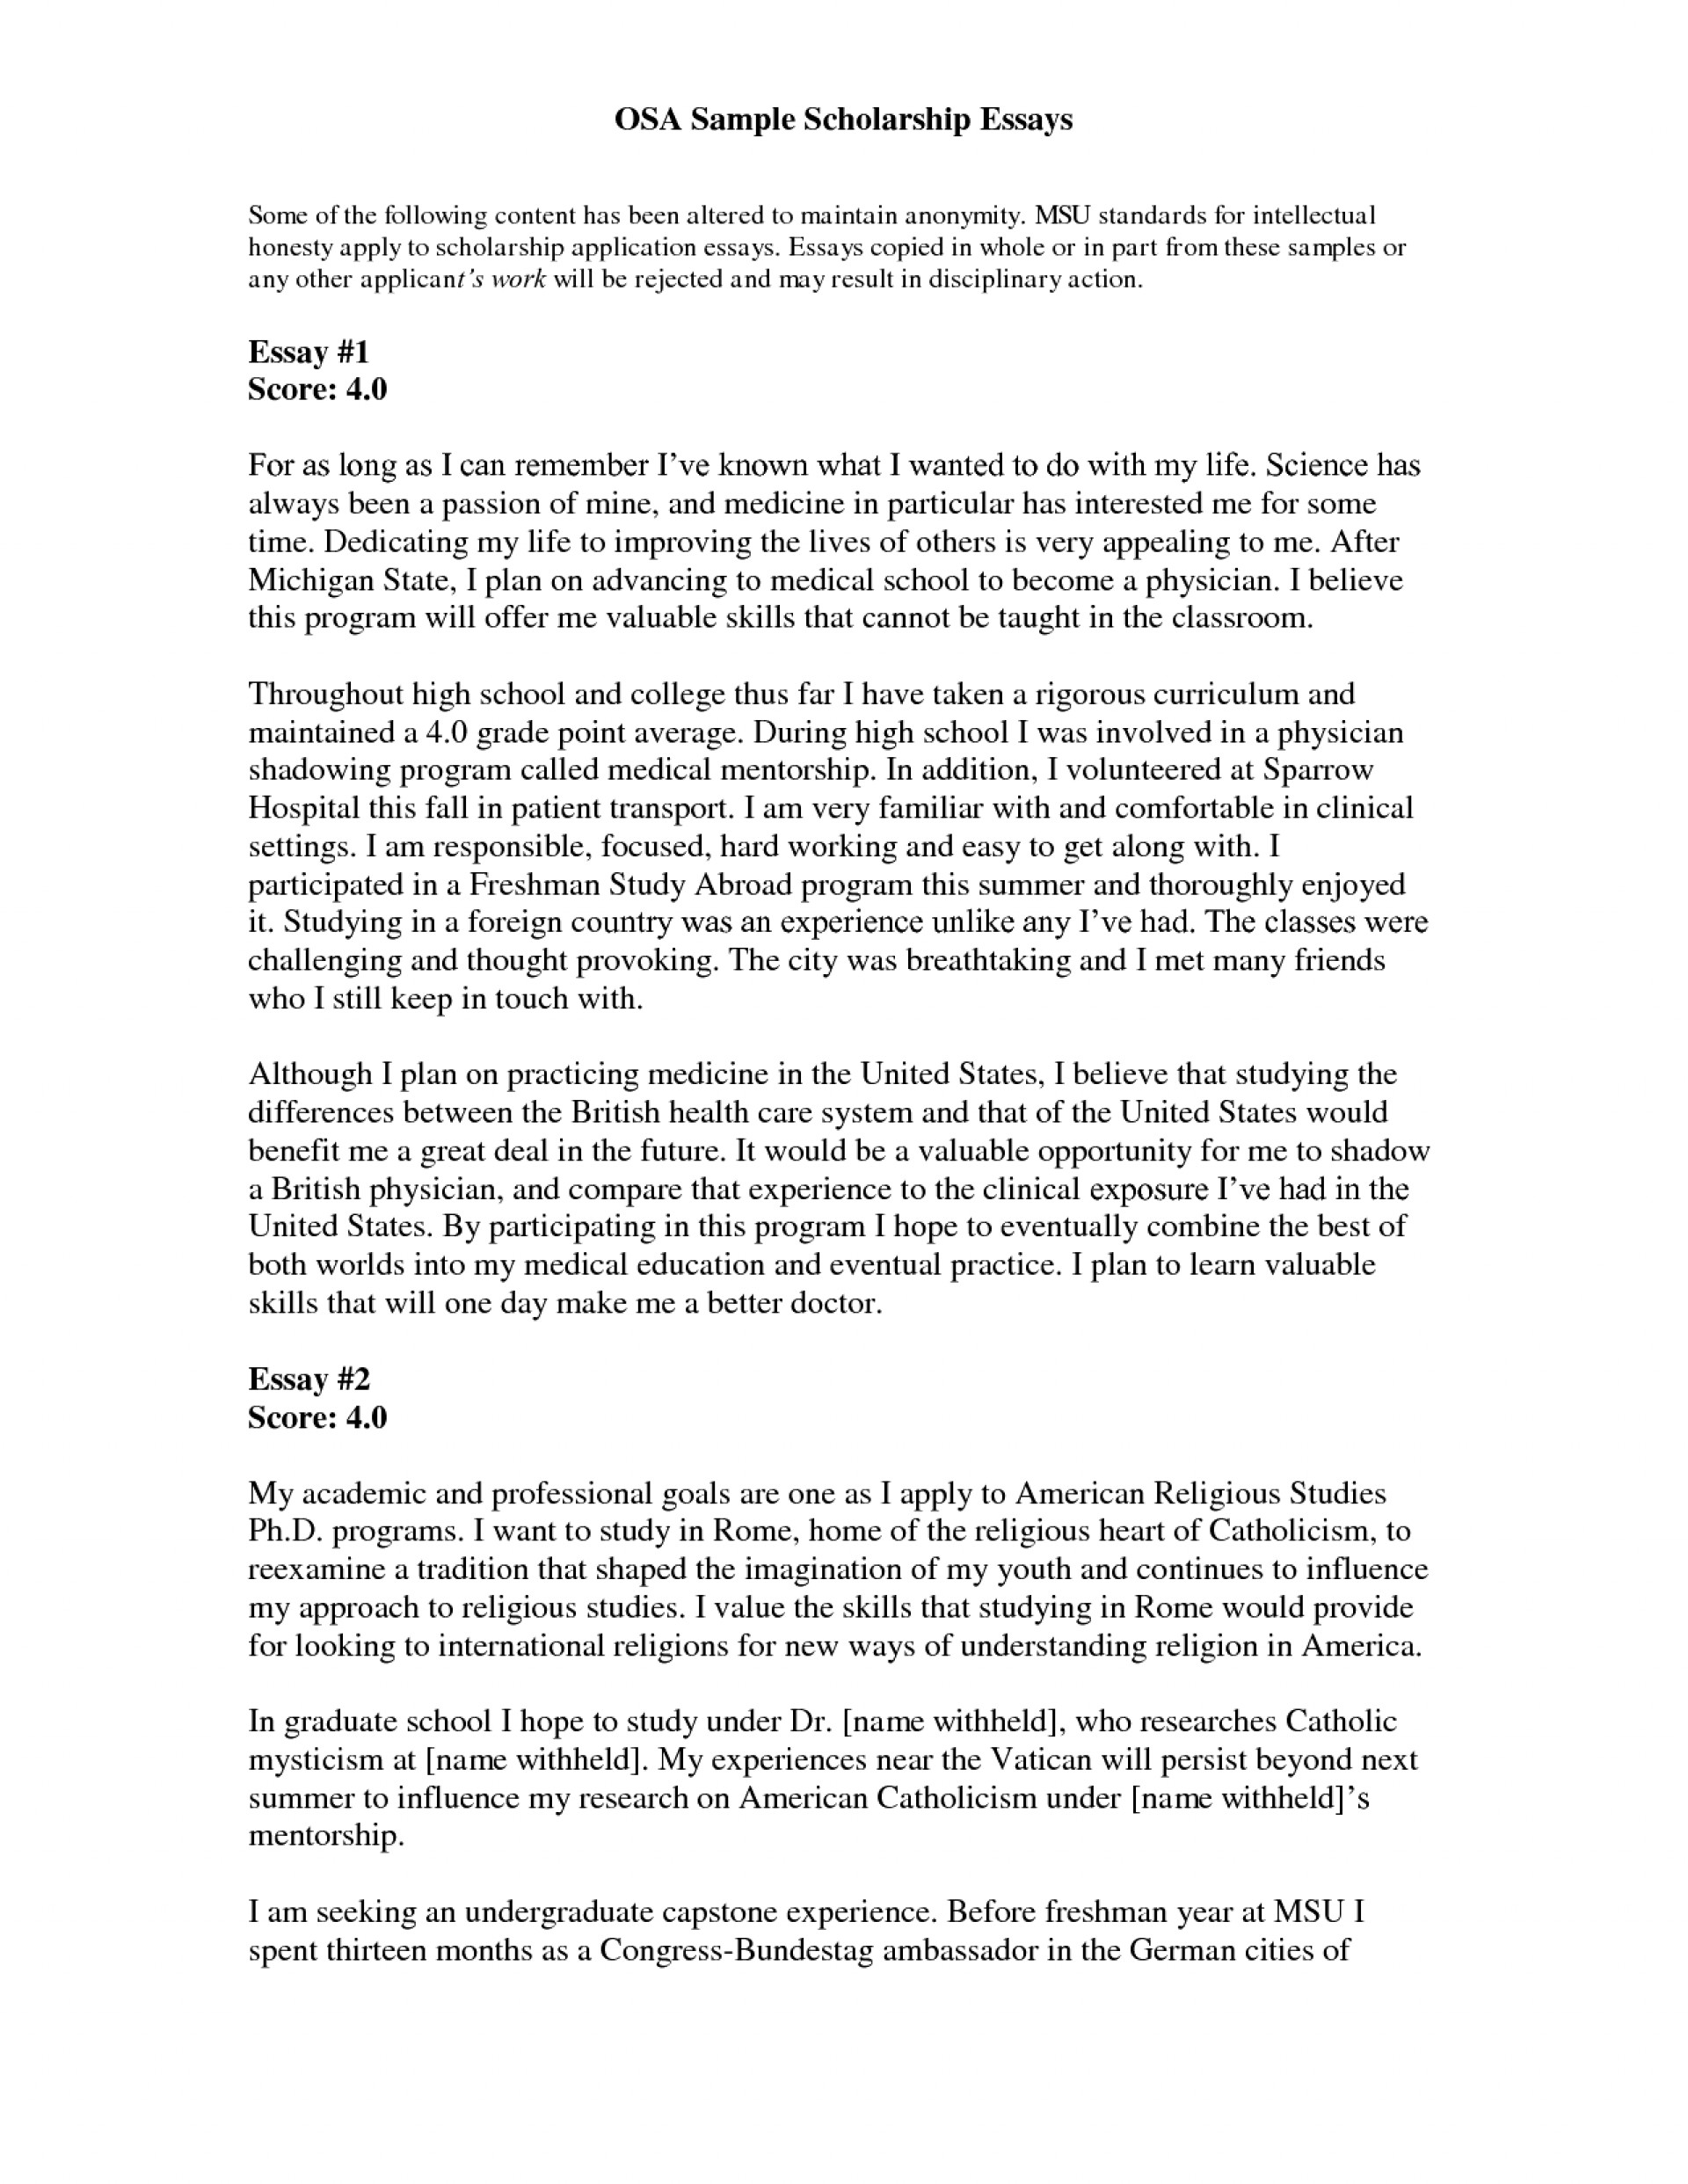 003 Why Do You Want To Study Abroad Essay Outstanding Example U 1920